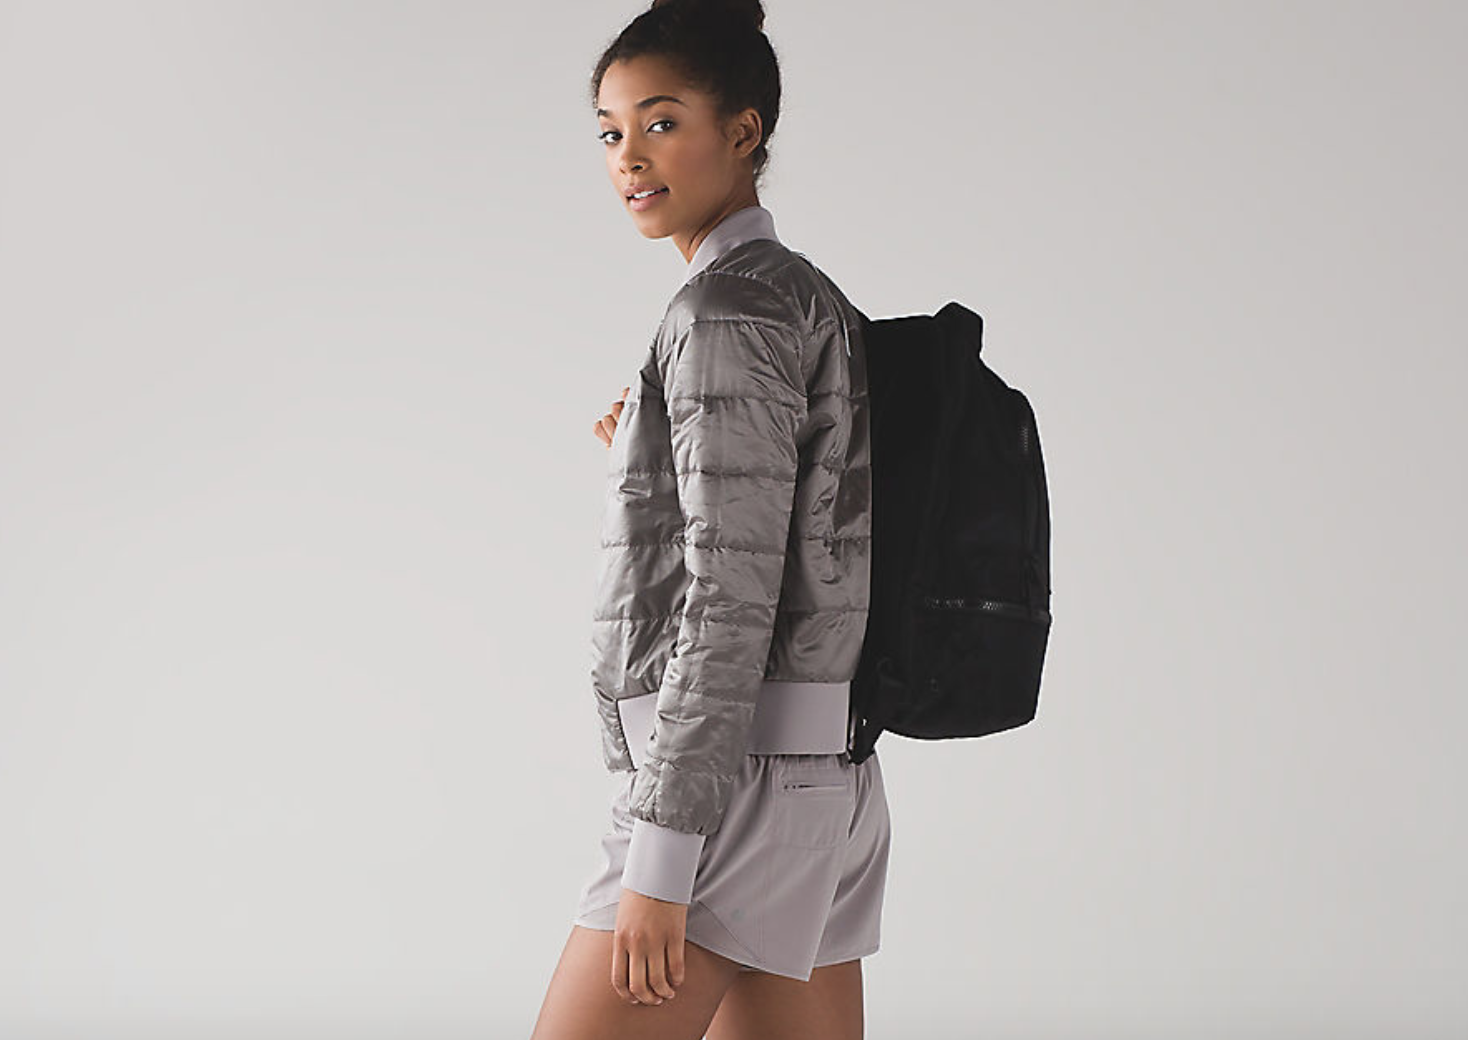 https://api.shopstyle.com/action/apiVisitRetailer?url=https%3A%2F%2Fshop.lululemon.com%2Fp%2Fwomen-shorts%2FHotty-Hot-Short-Long%2F_%2Fprod1360064%3Frcnt%3D43%26N%3D1z13ziiZ7vf%26cnt%3D64%26color%3DLW7ACQT_028603&site=www.shopstyle.ca&pid=uid6784-25288972-7